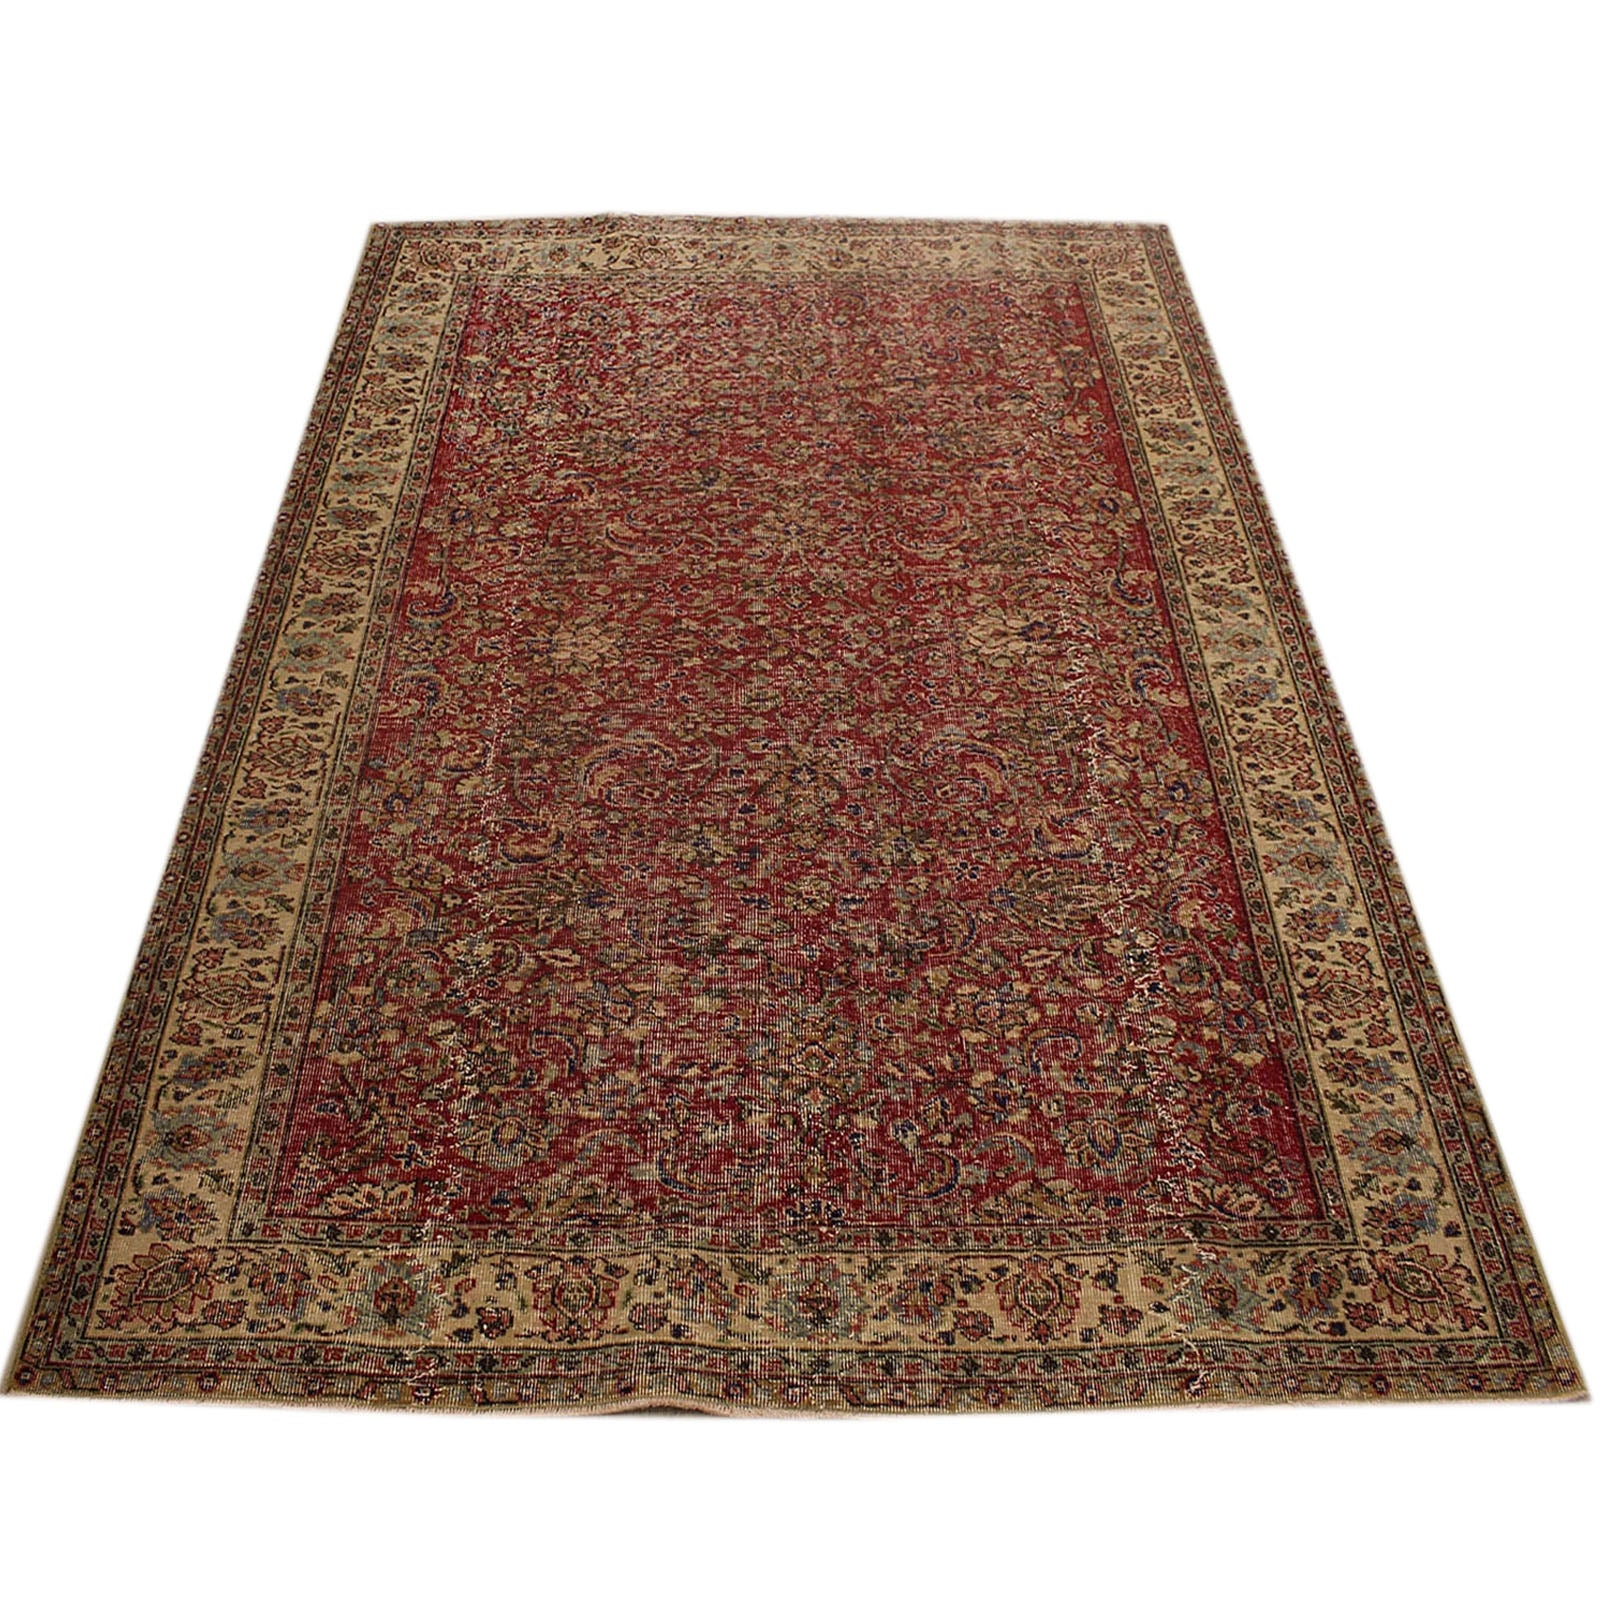 Hali 150X245 CM Bursa Handmade over dyed rug 2370